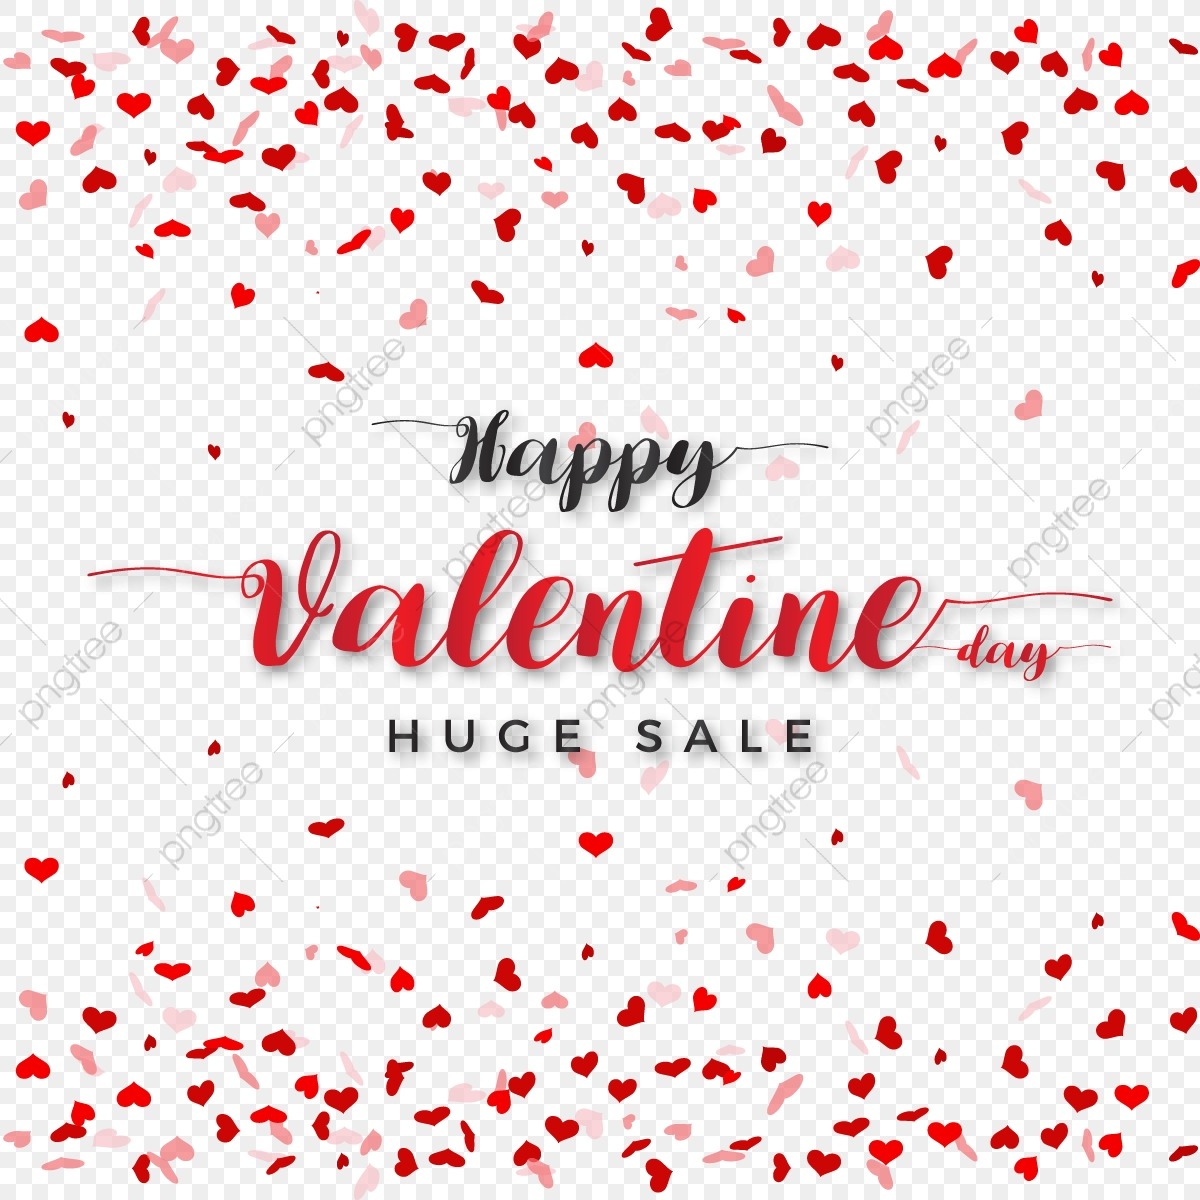 Special Valentine Day Sale With Transparent Heart Background